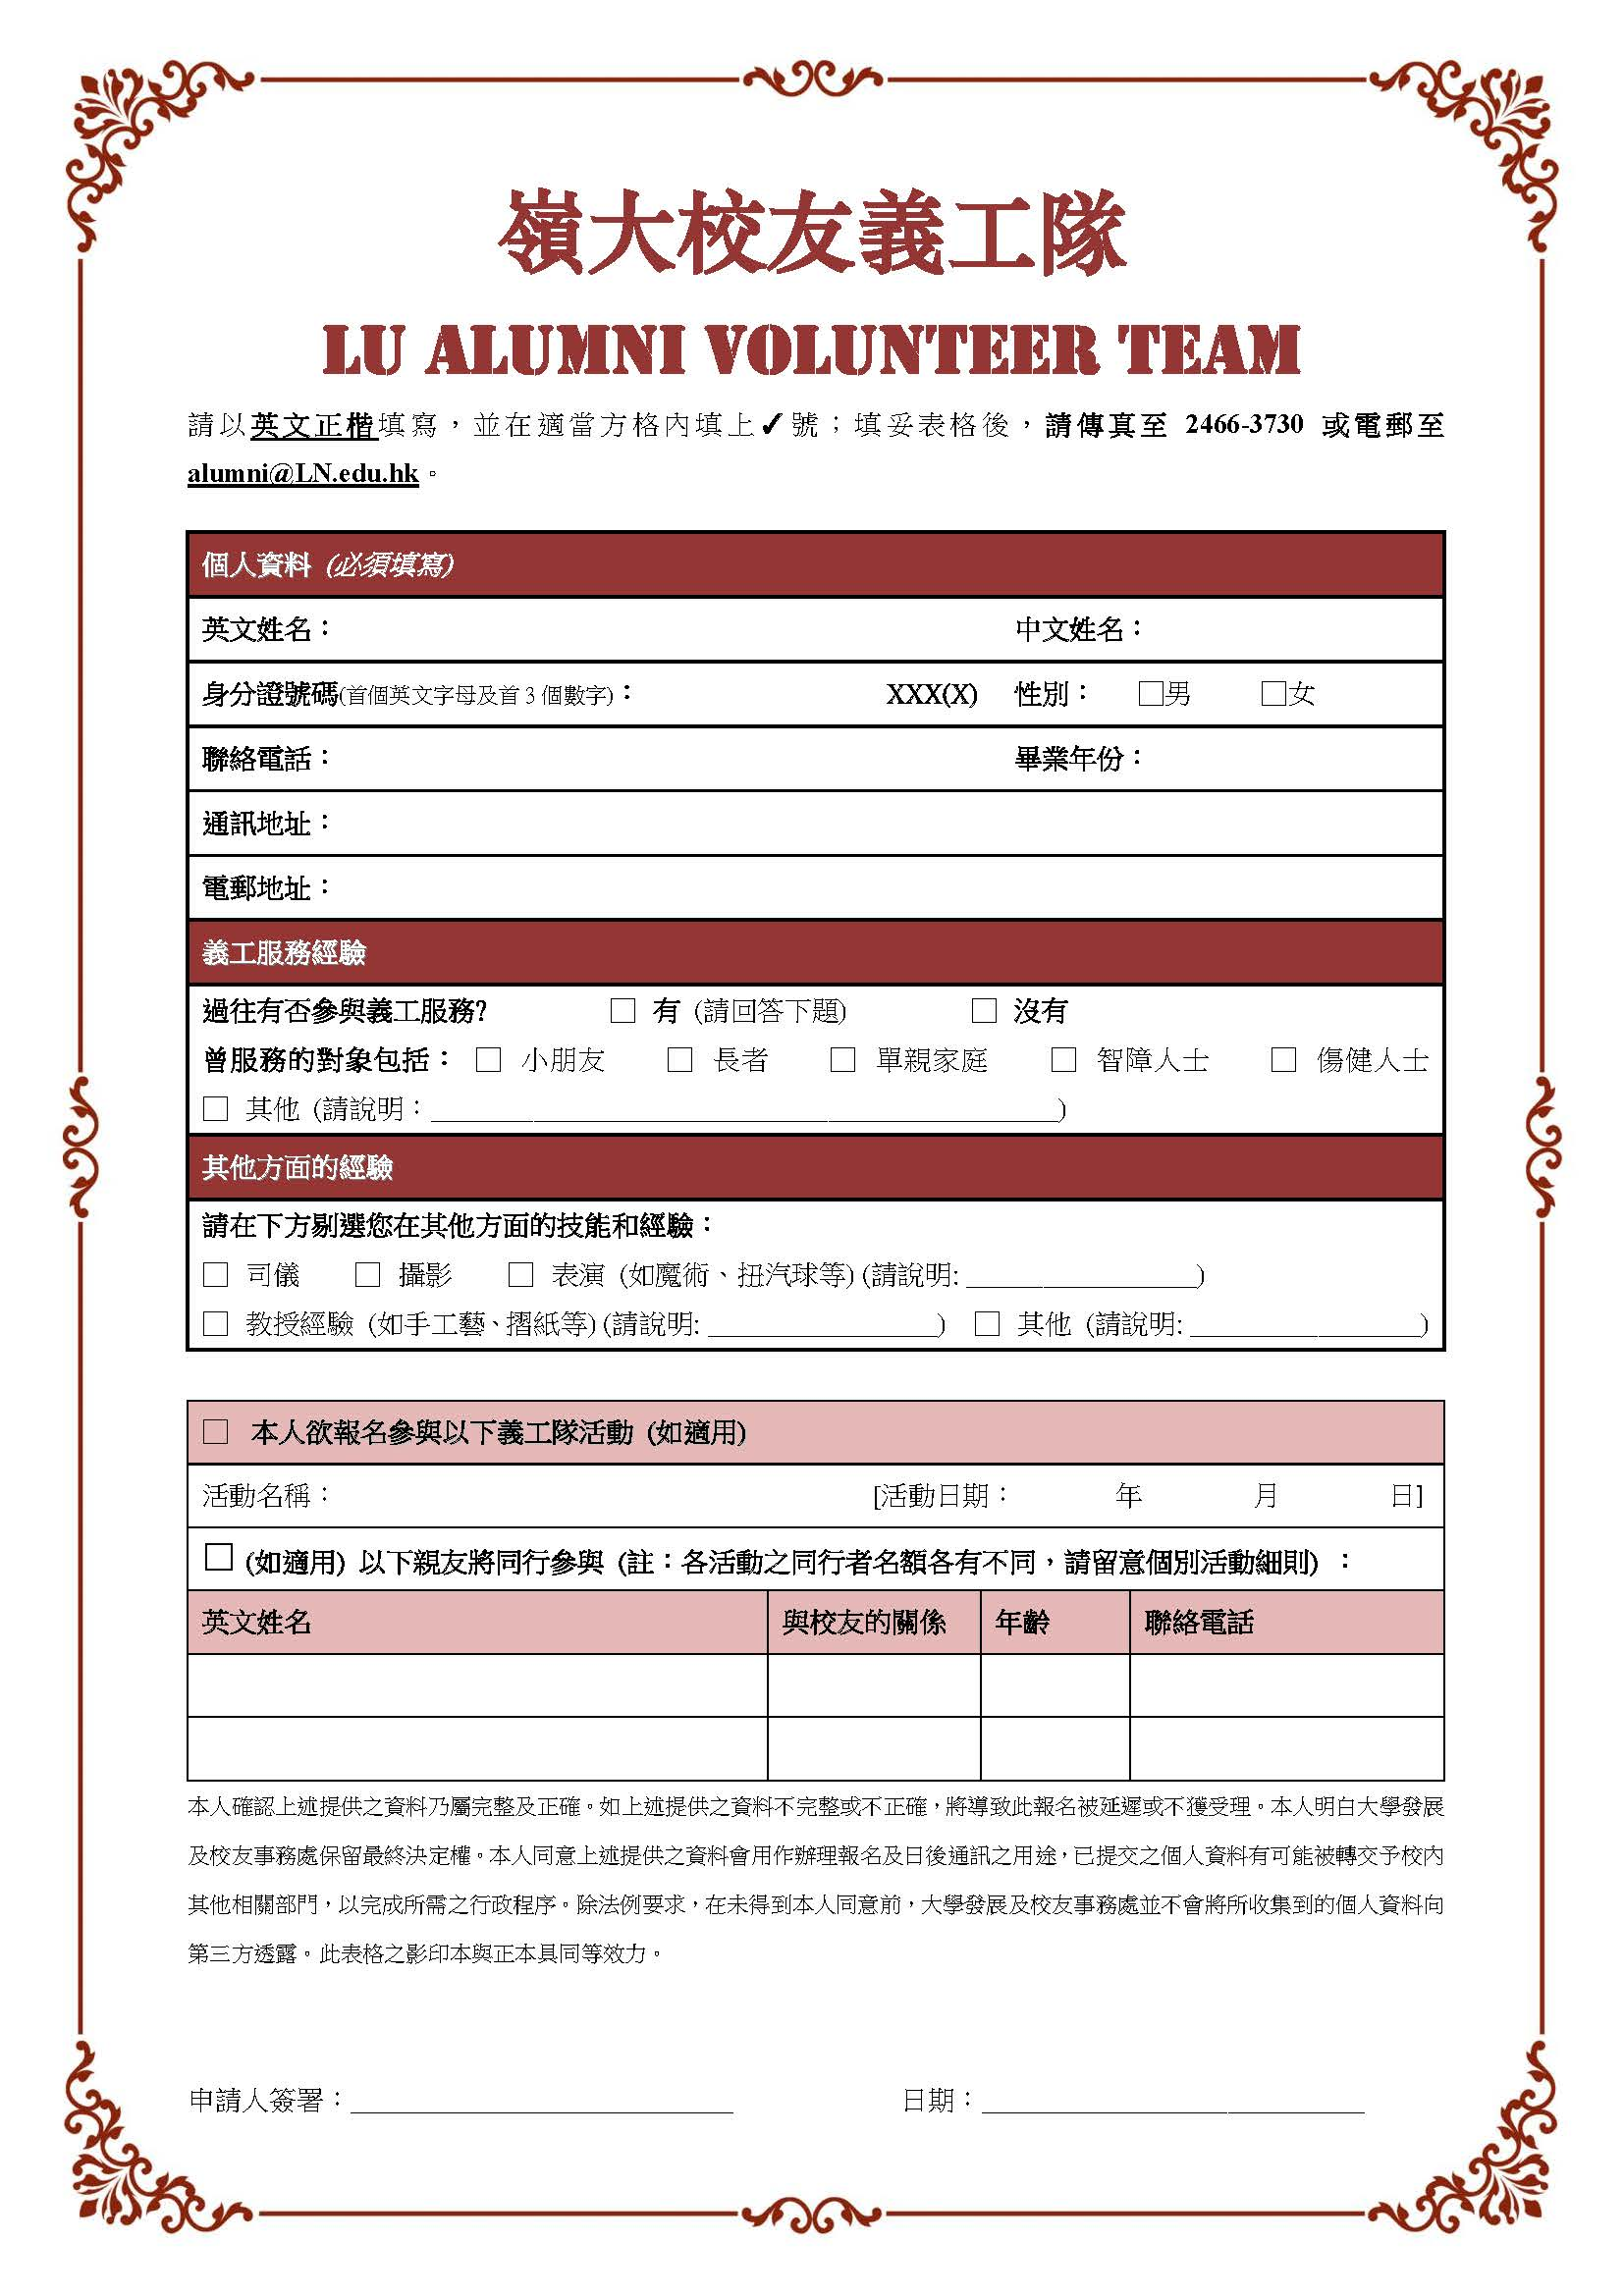 Alumni Volunteer Team Application Form